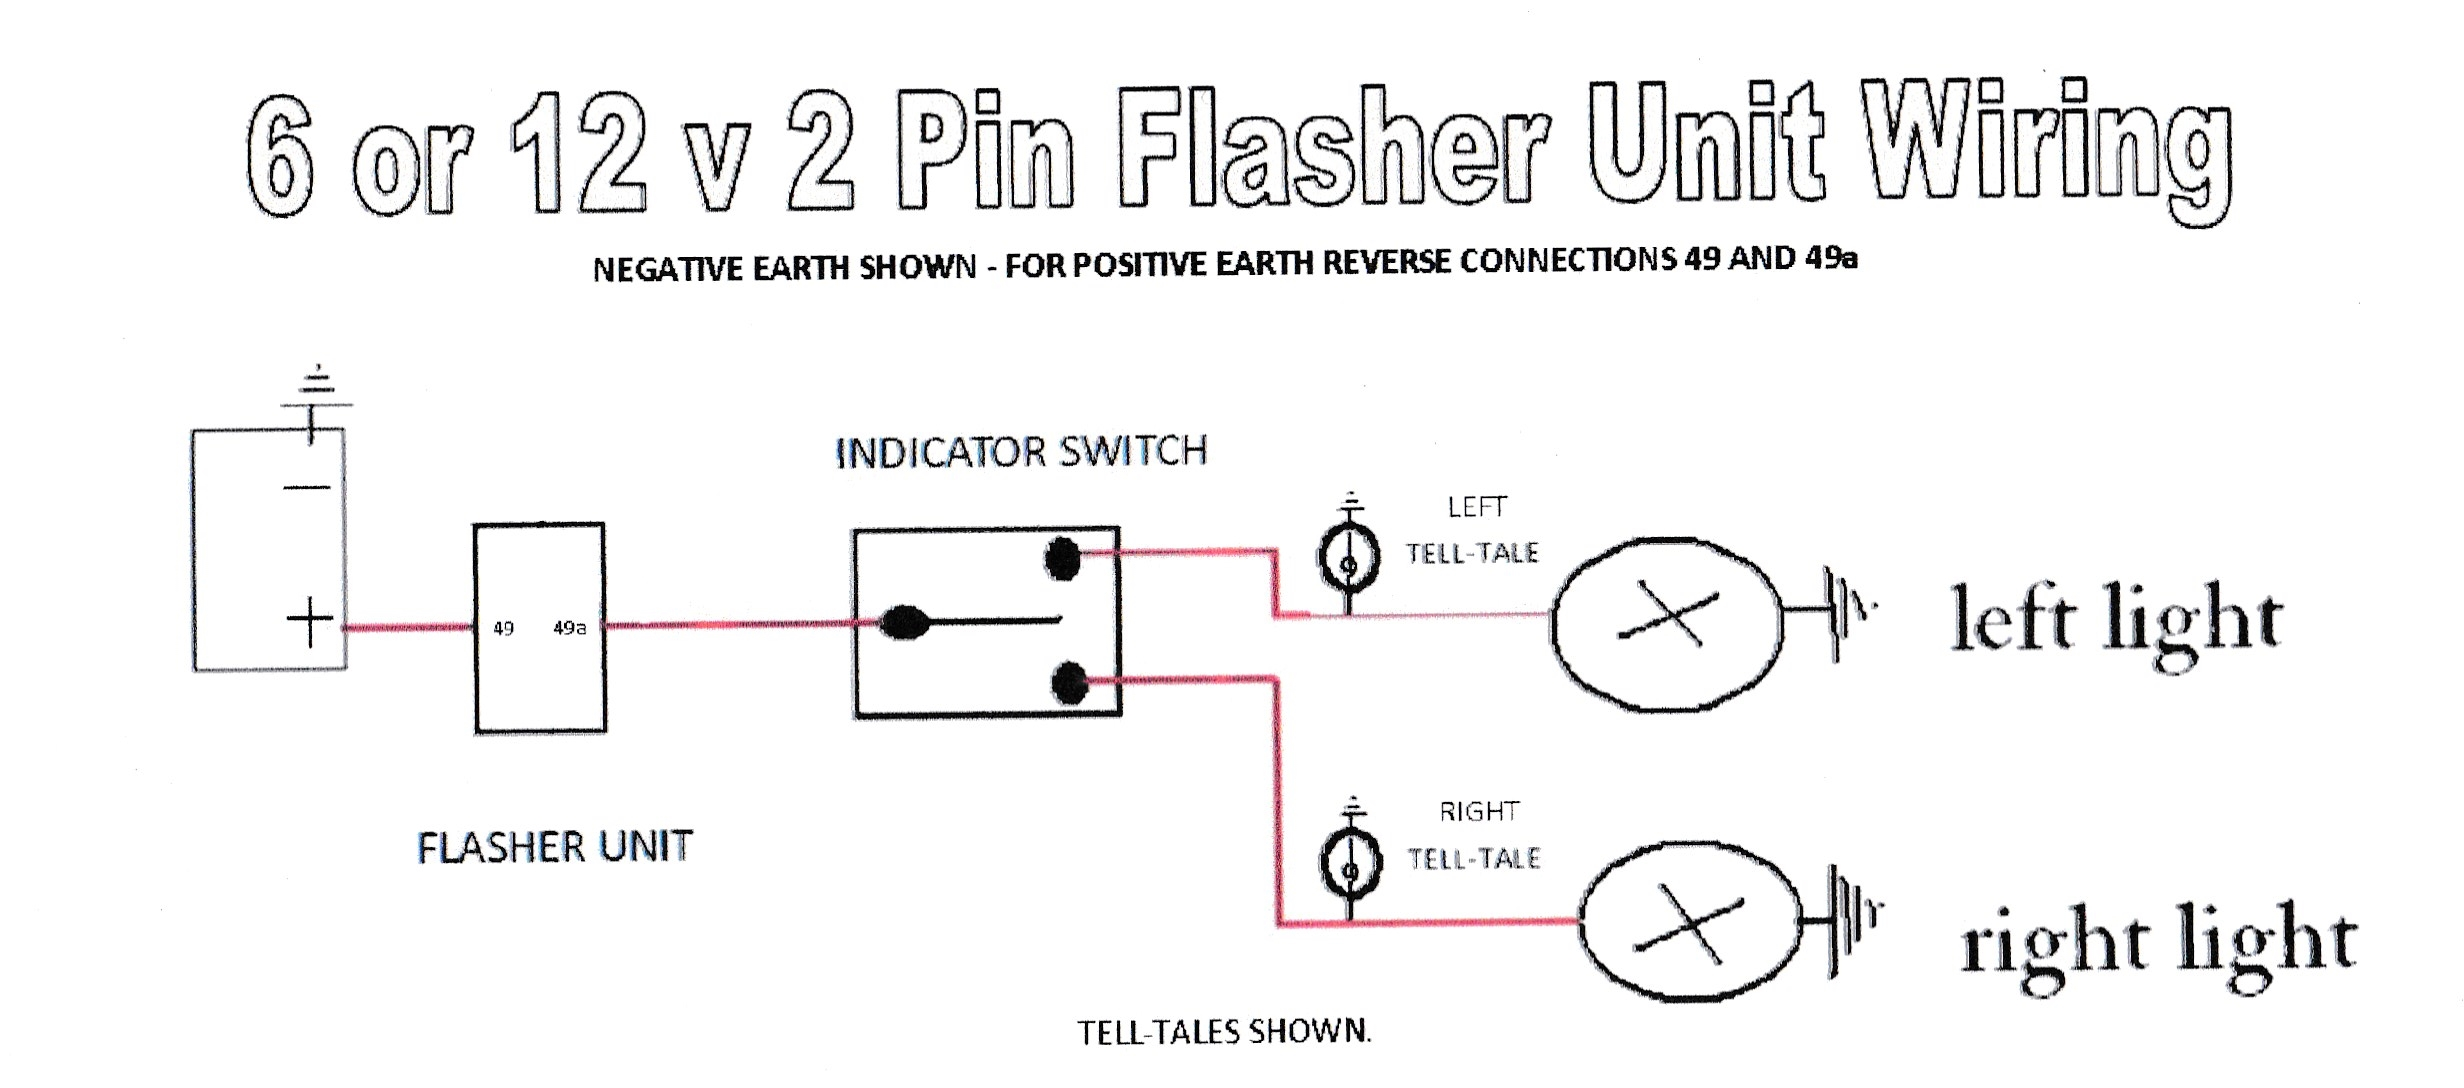 Led Flasher Wiring Diagram Everything About Relay Circuit Using Bc547 5 Pin Library Rh 70 Codingcommunity De Unit